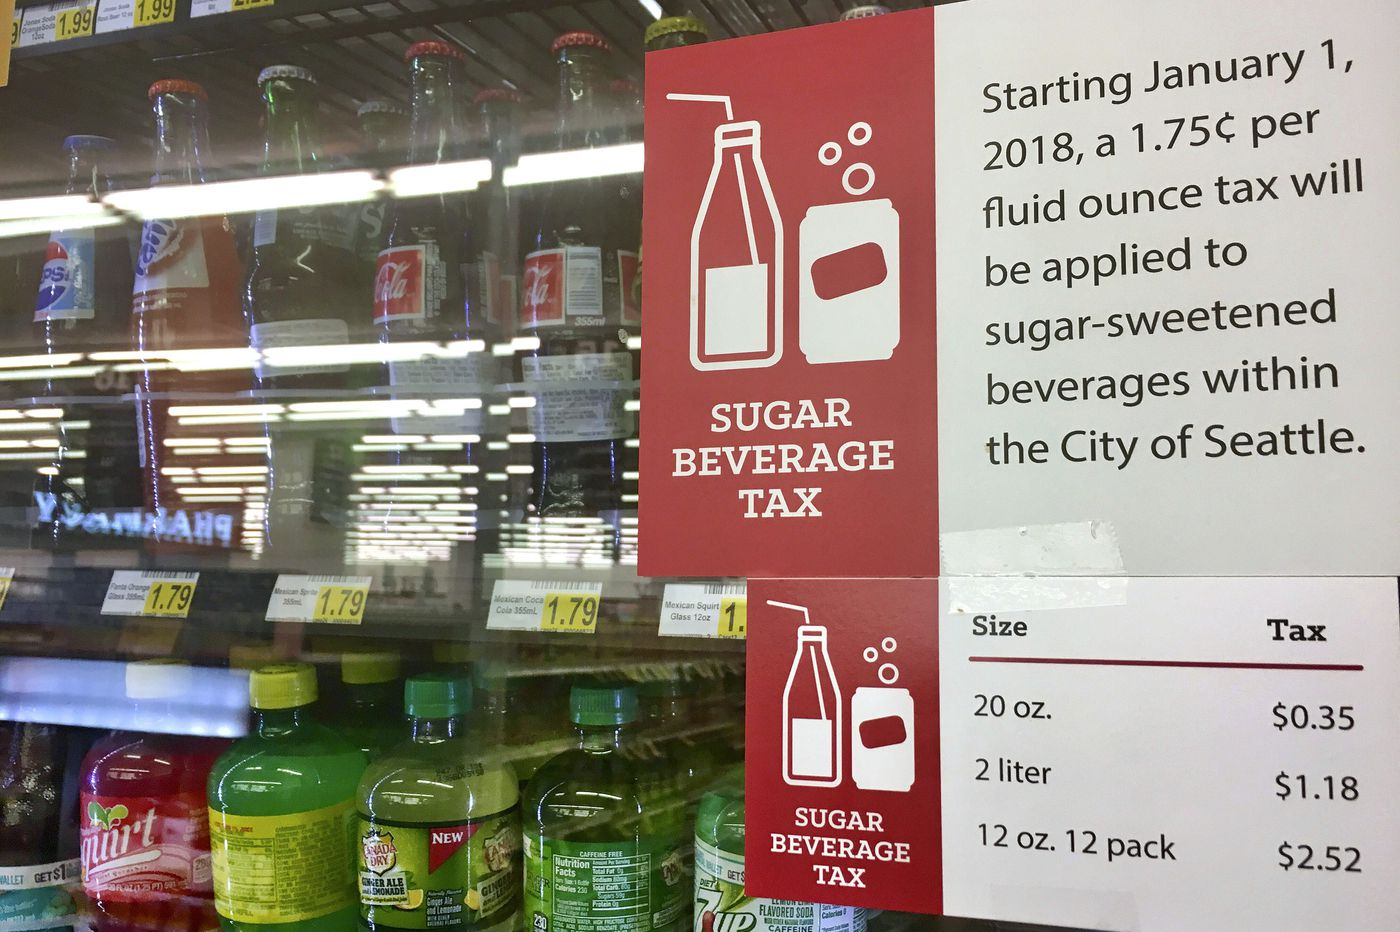 Will fights over soda taxes in other states impact Philly?